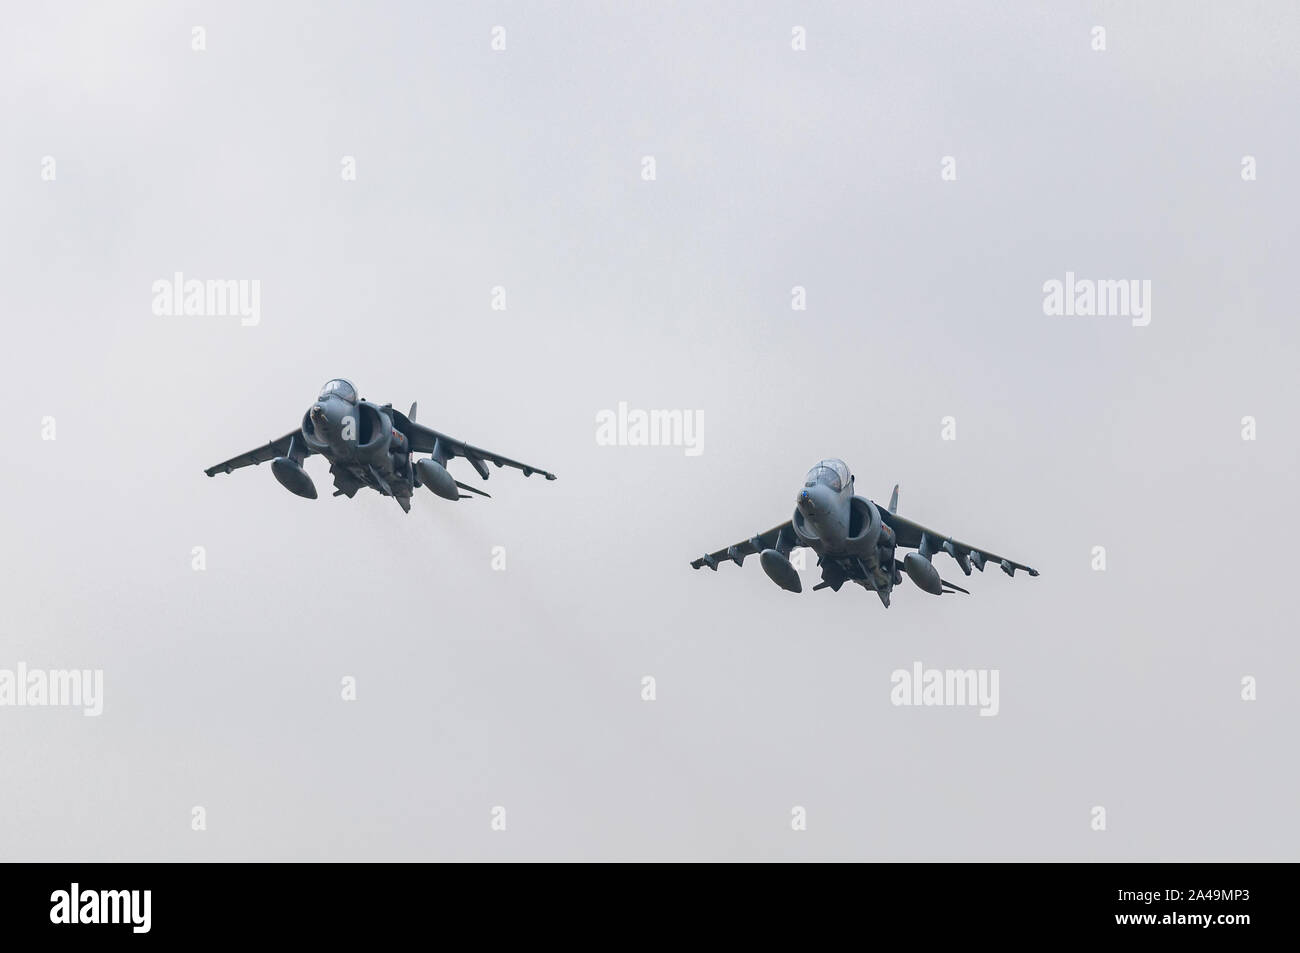 Two RAF Harrier GR9 fighter jets on their last flight on an overcast day, 15th December 2010, RAF Cottesmore Stock Photo